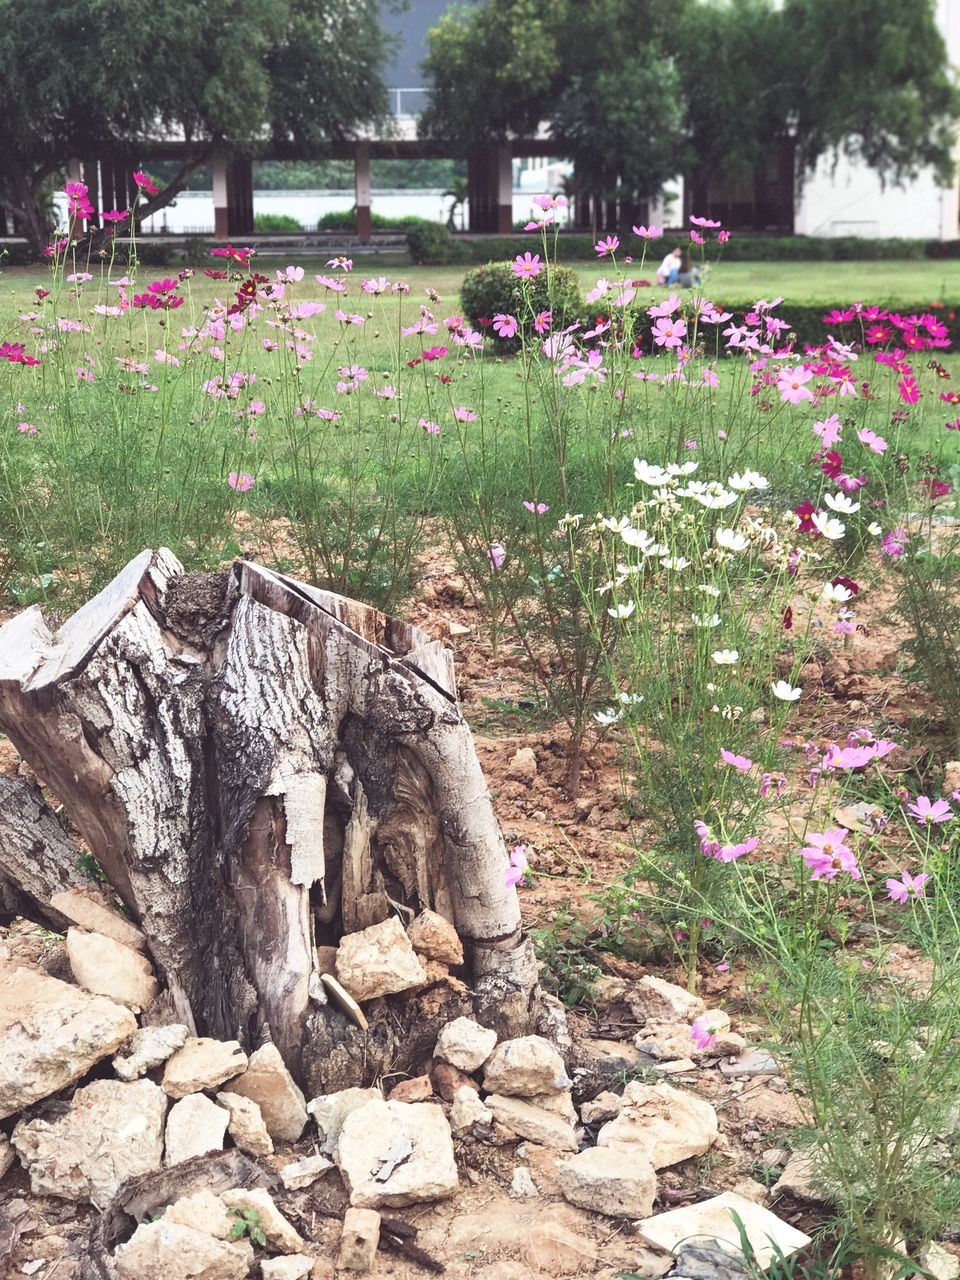 flower, nature, cemetery, day, outdoors, plant, growth, memorial, tree, no people, beauty in nature, tranquility, grass, gravestone, graveyard